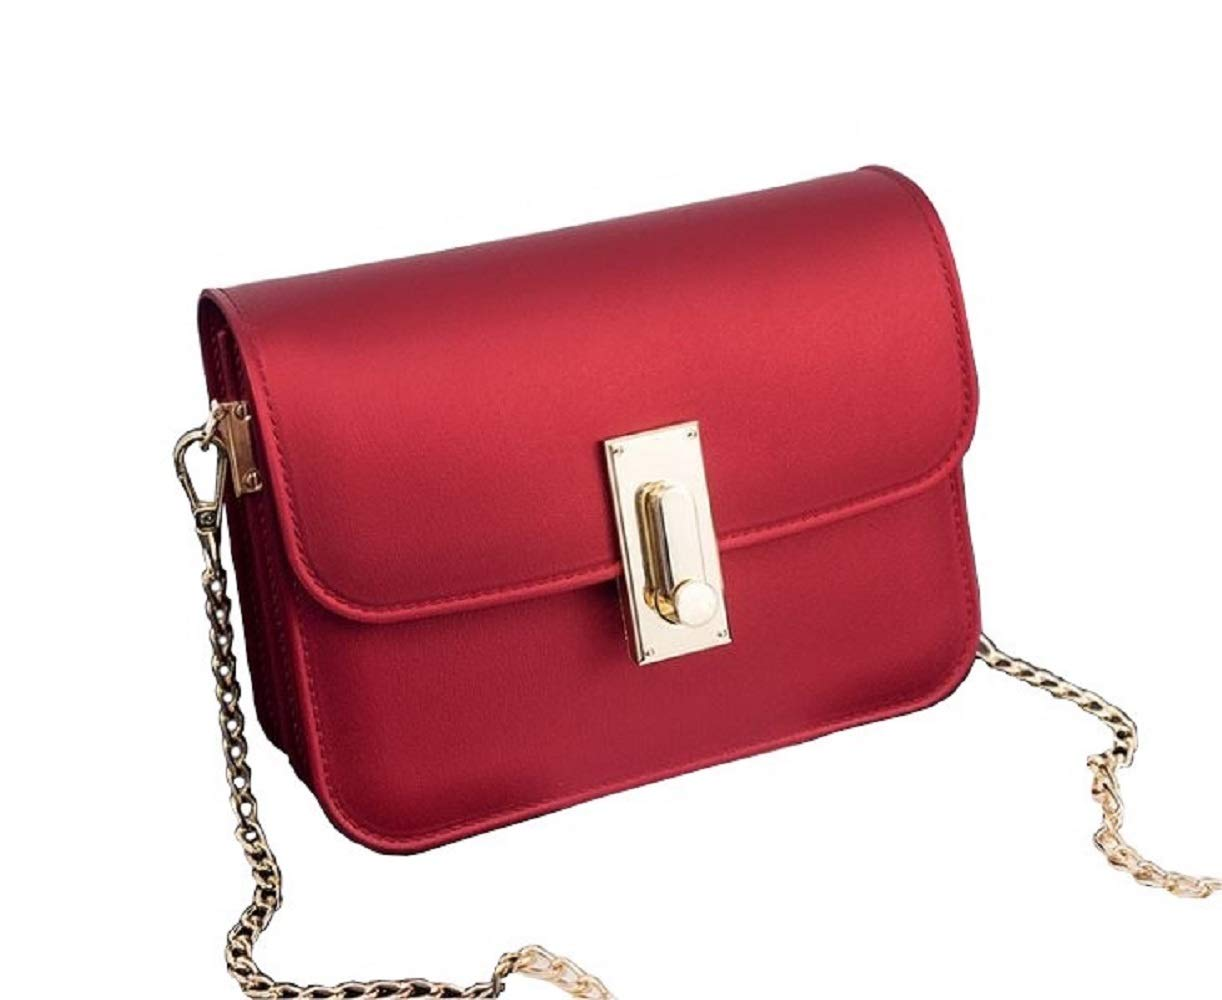 LF-JP PVC Evening bags for women [ Designer Clutch with Chain ] Shoulder Bag Cross body Purse (Red) by LF-JP (Image #1)